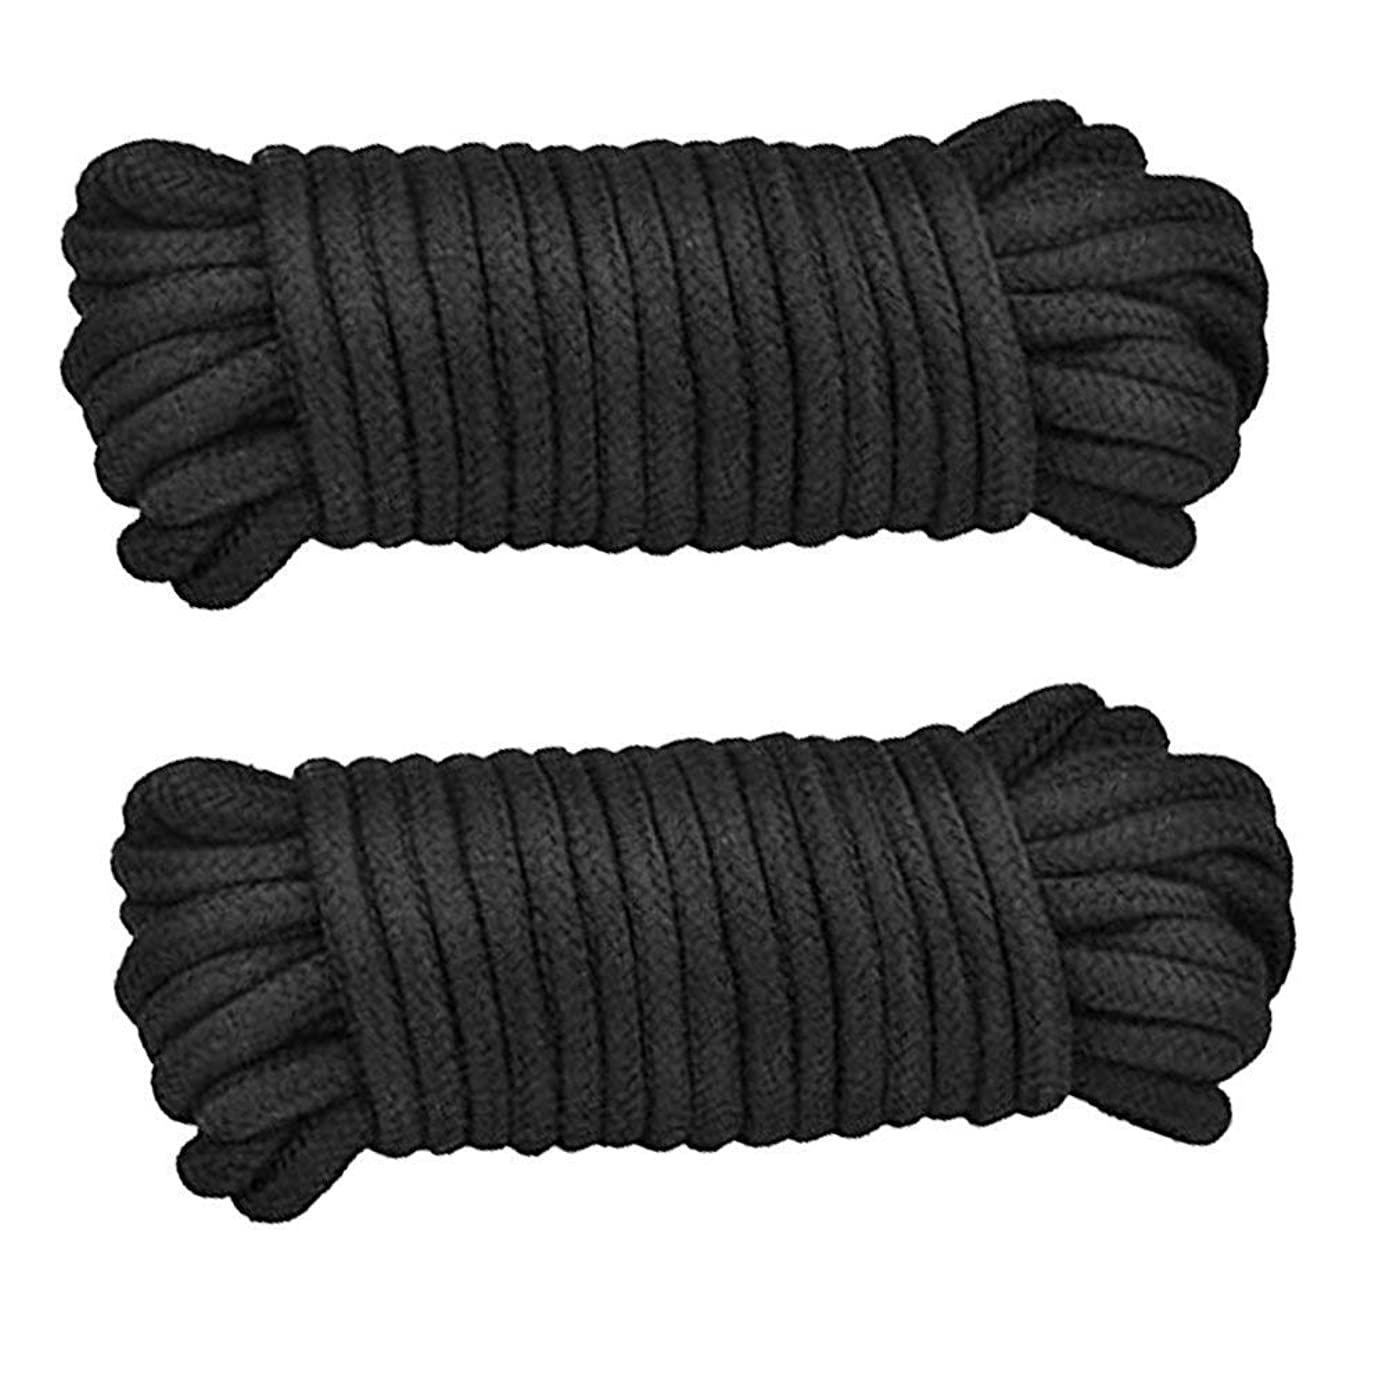 All Purpose Braid Rope DIY Decorative - Rope Cotton Blend Twisted Cord Rope Craft - hqg0953417